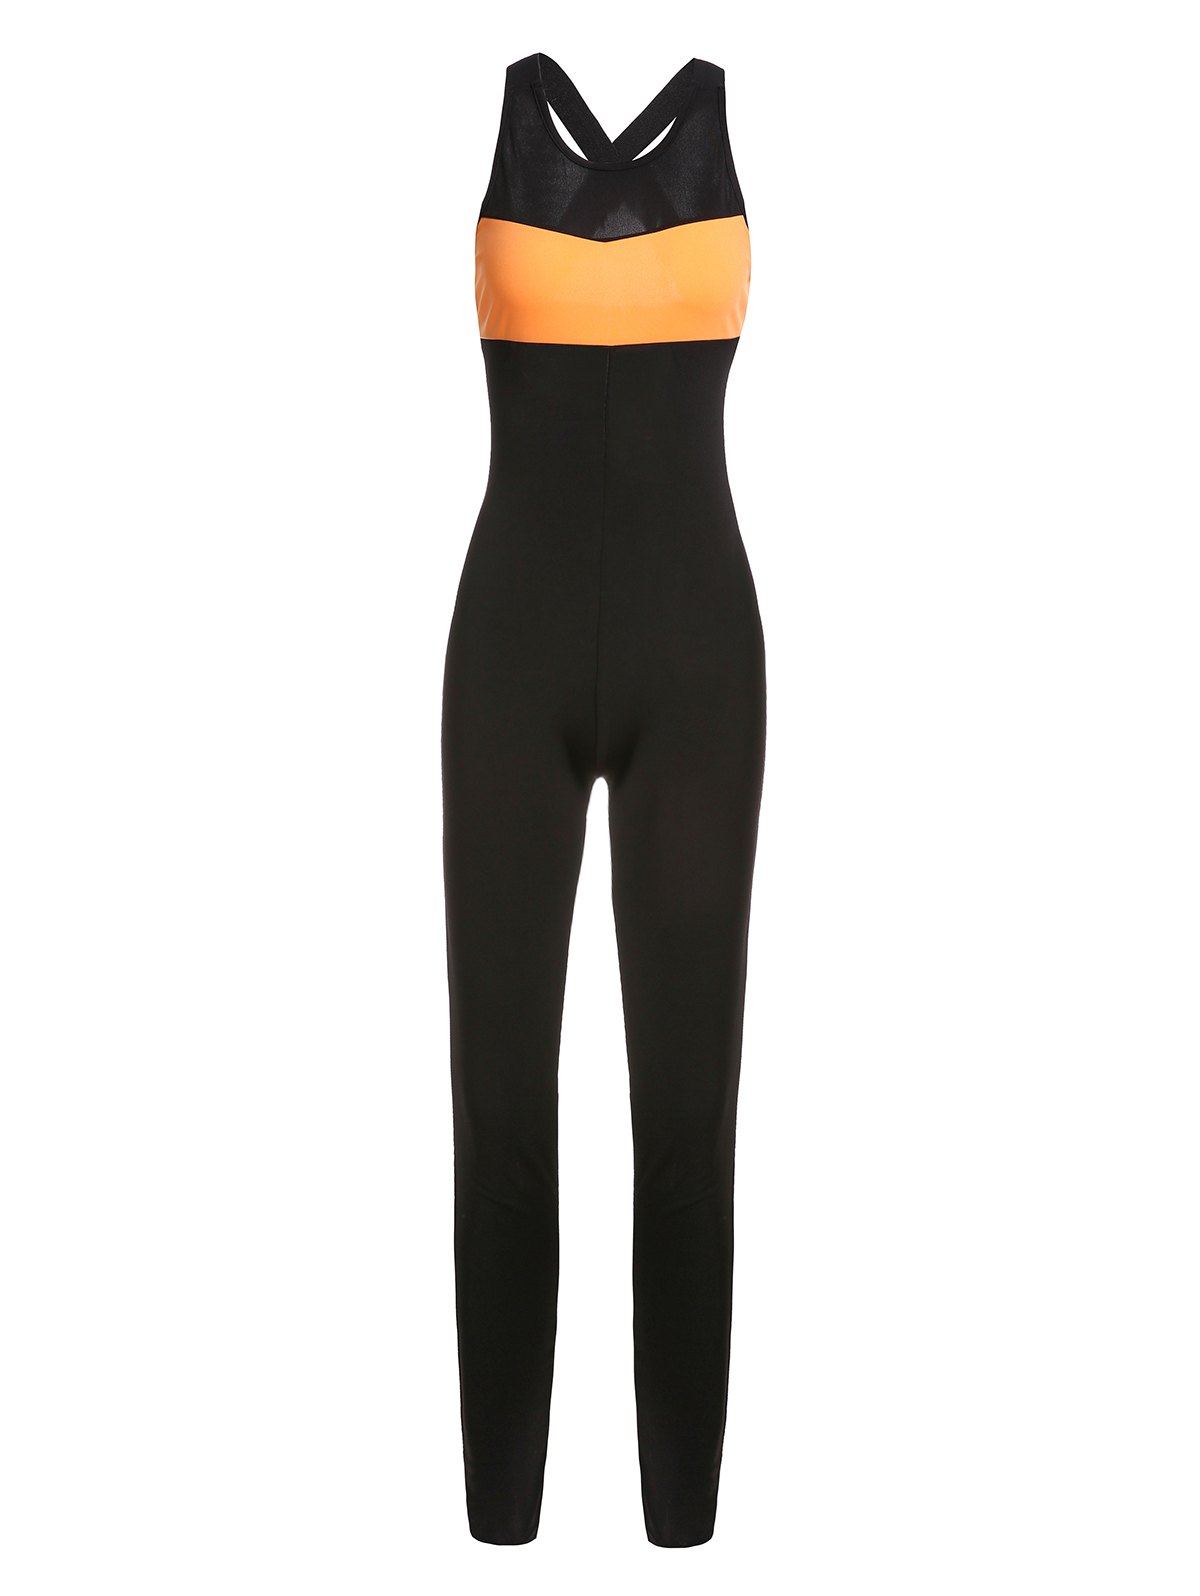 Chic See-Through Hollow Out Sport Jumpsuit For Women - S BLACK